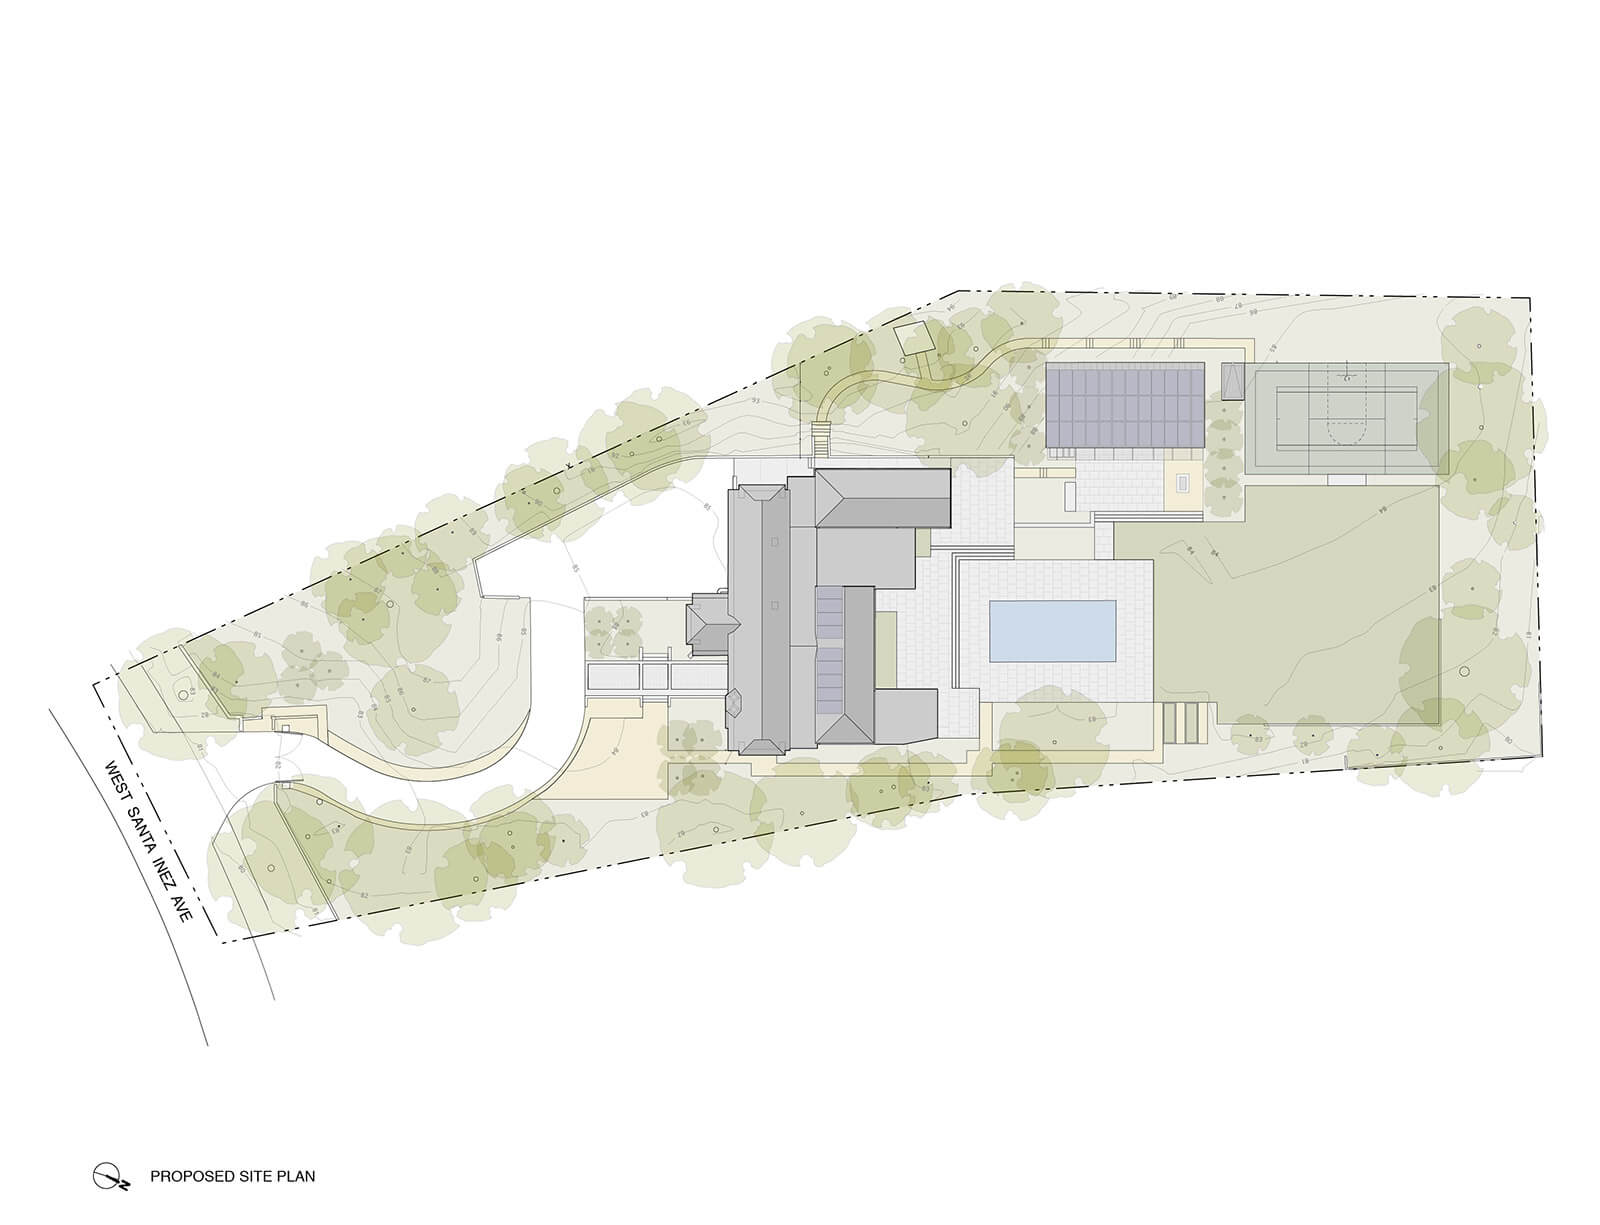 studio vara residential hillsborough drawing site plan